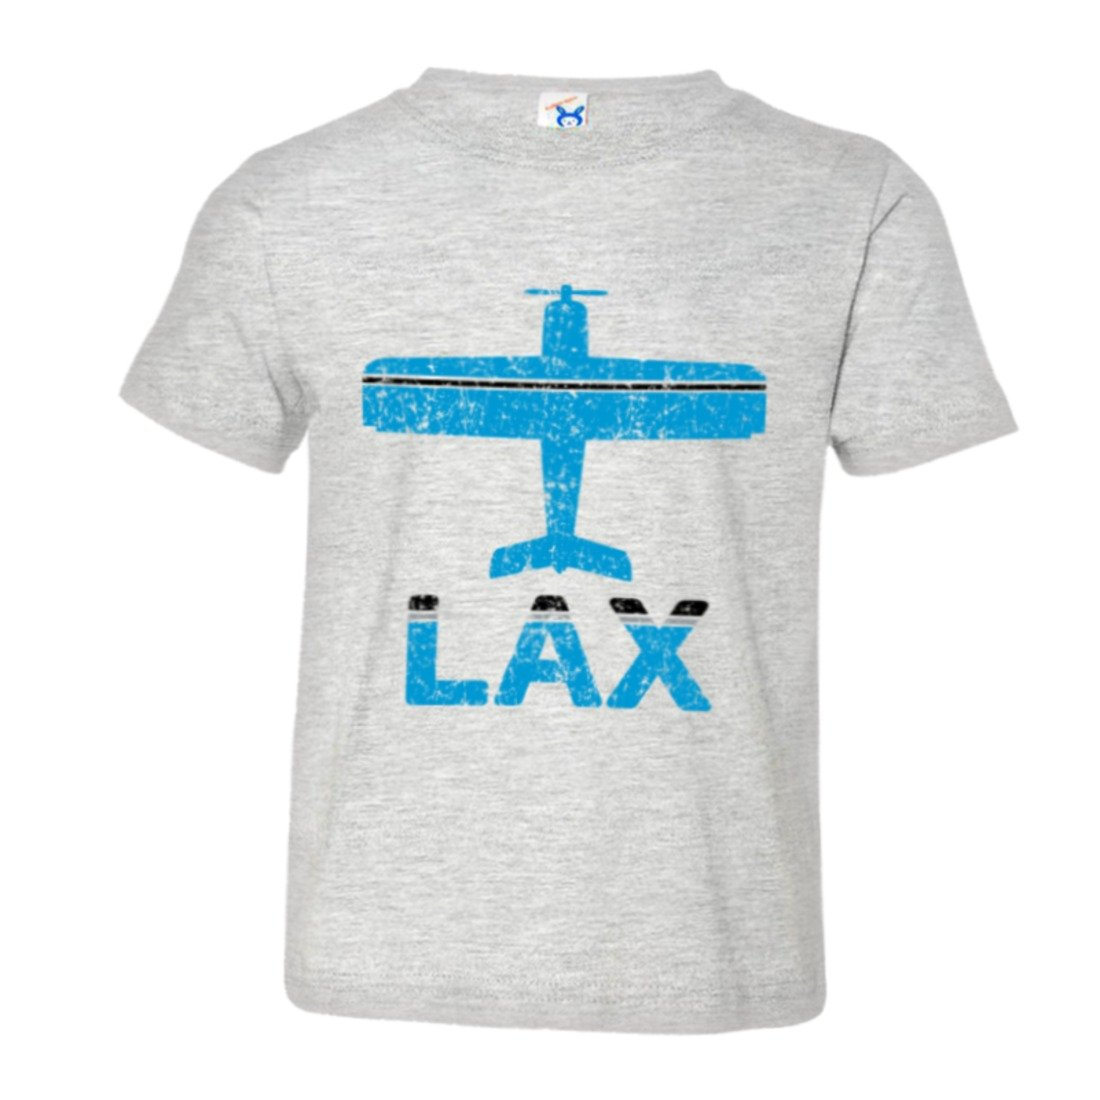 Toddler Vintage Airplane Airport Fly Lax Los Angeles HQ Tee Shirt